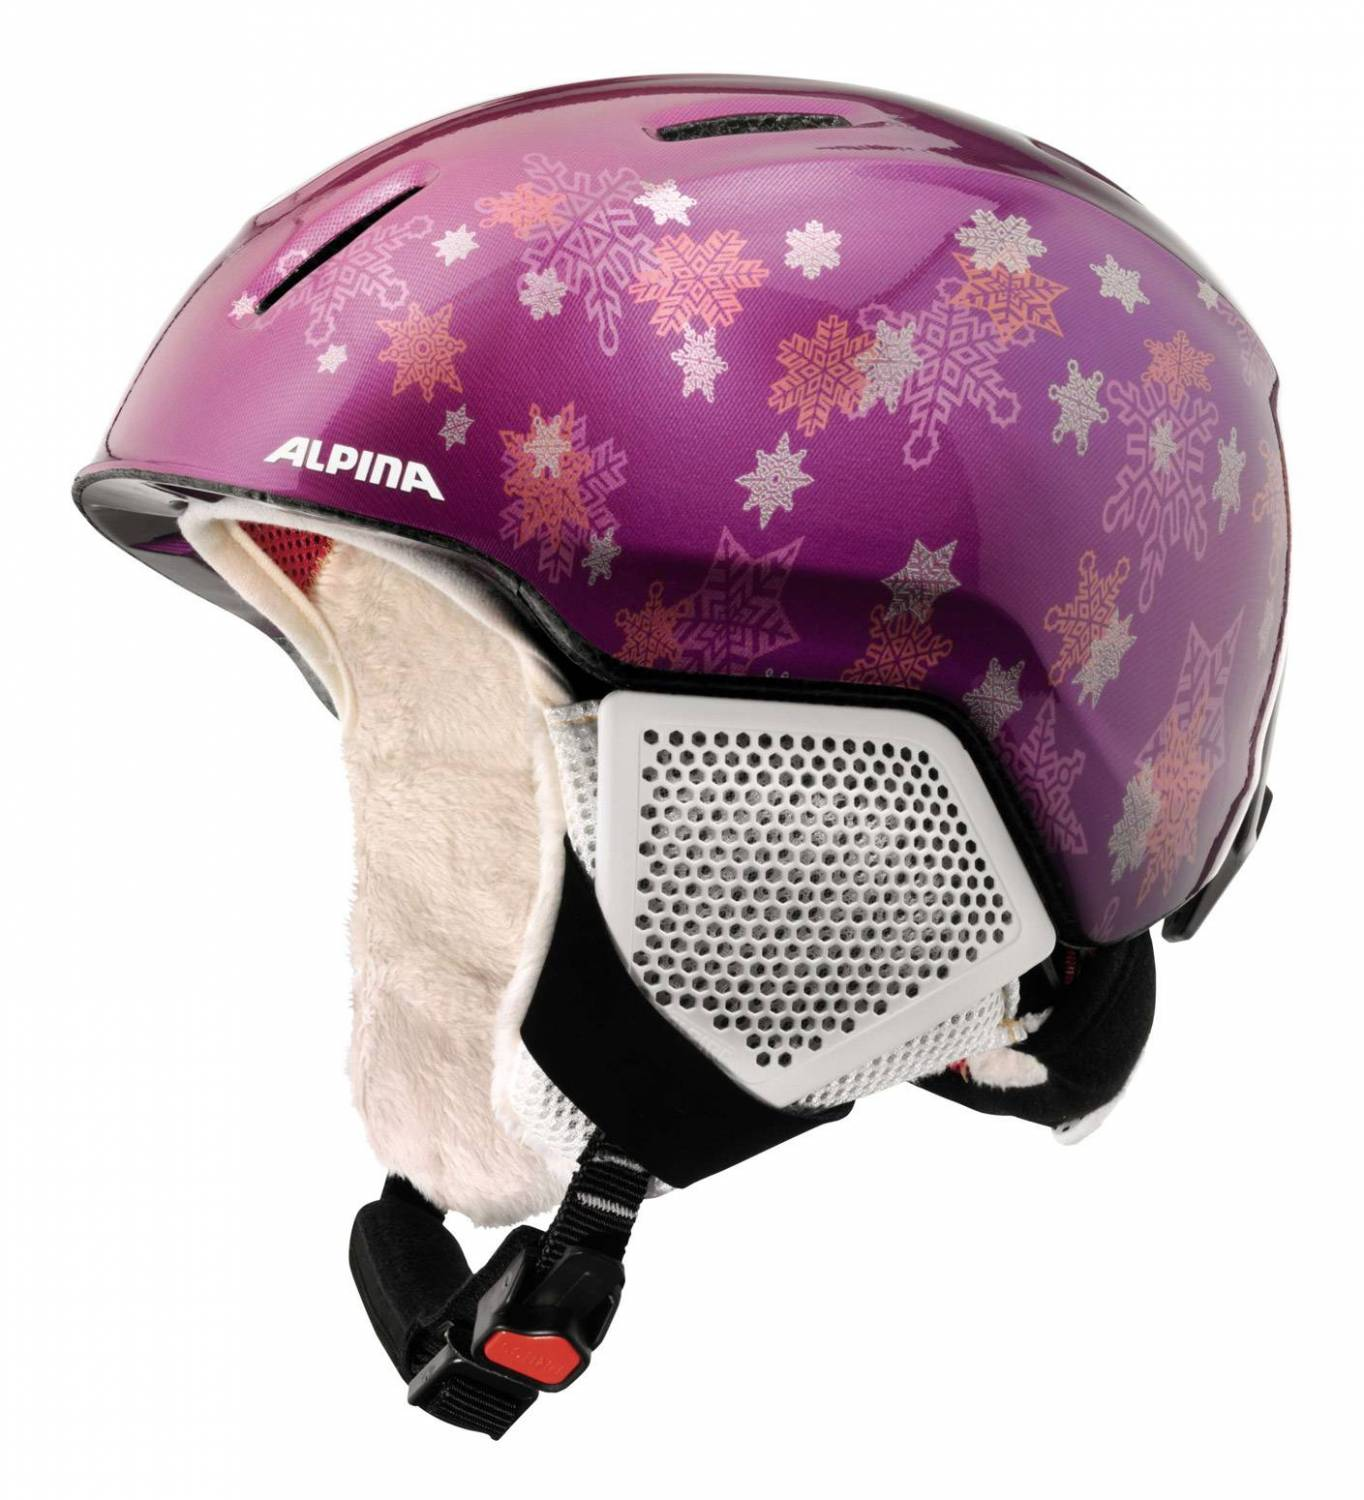 Alpina Carat LX Kinderskihelm (Größe 51 55 cm, 52 purple star)